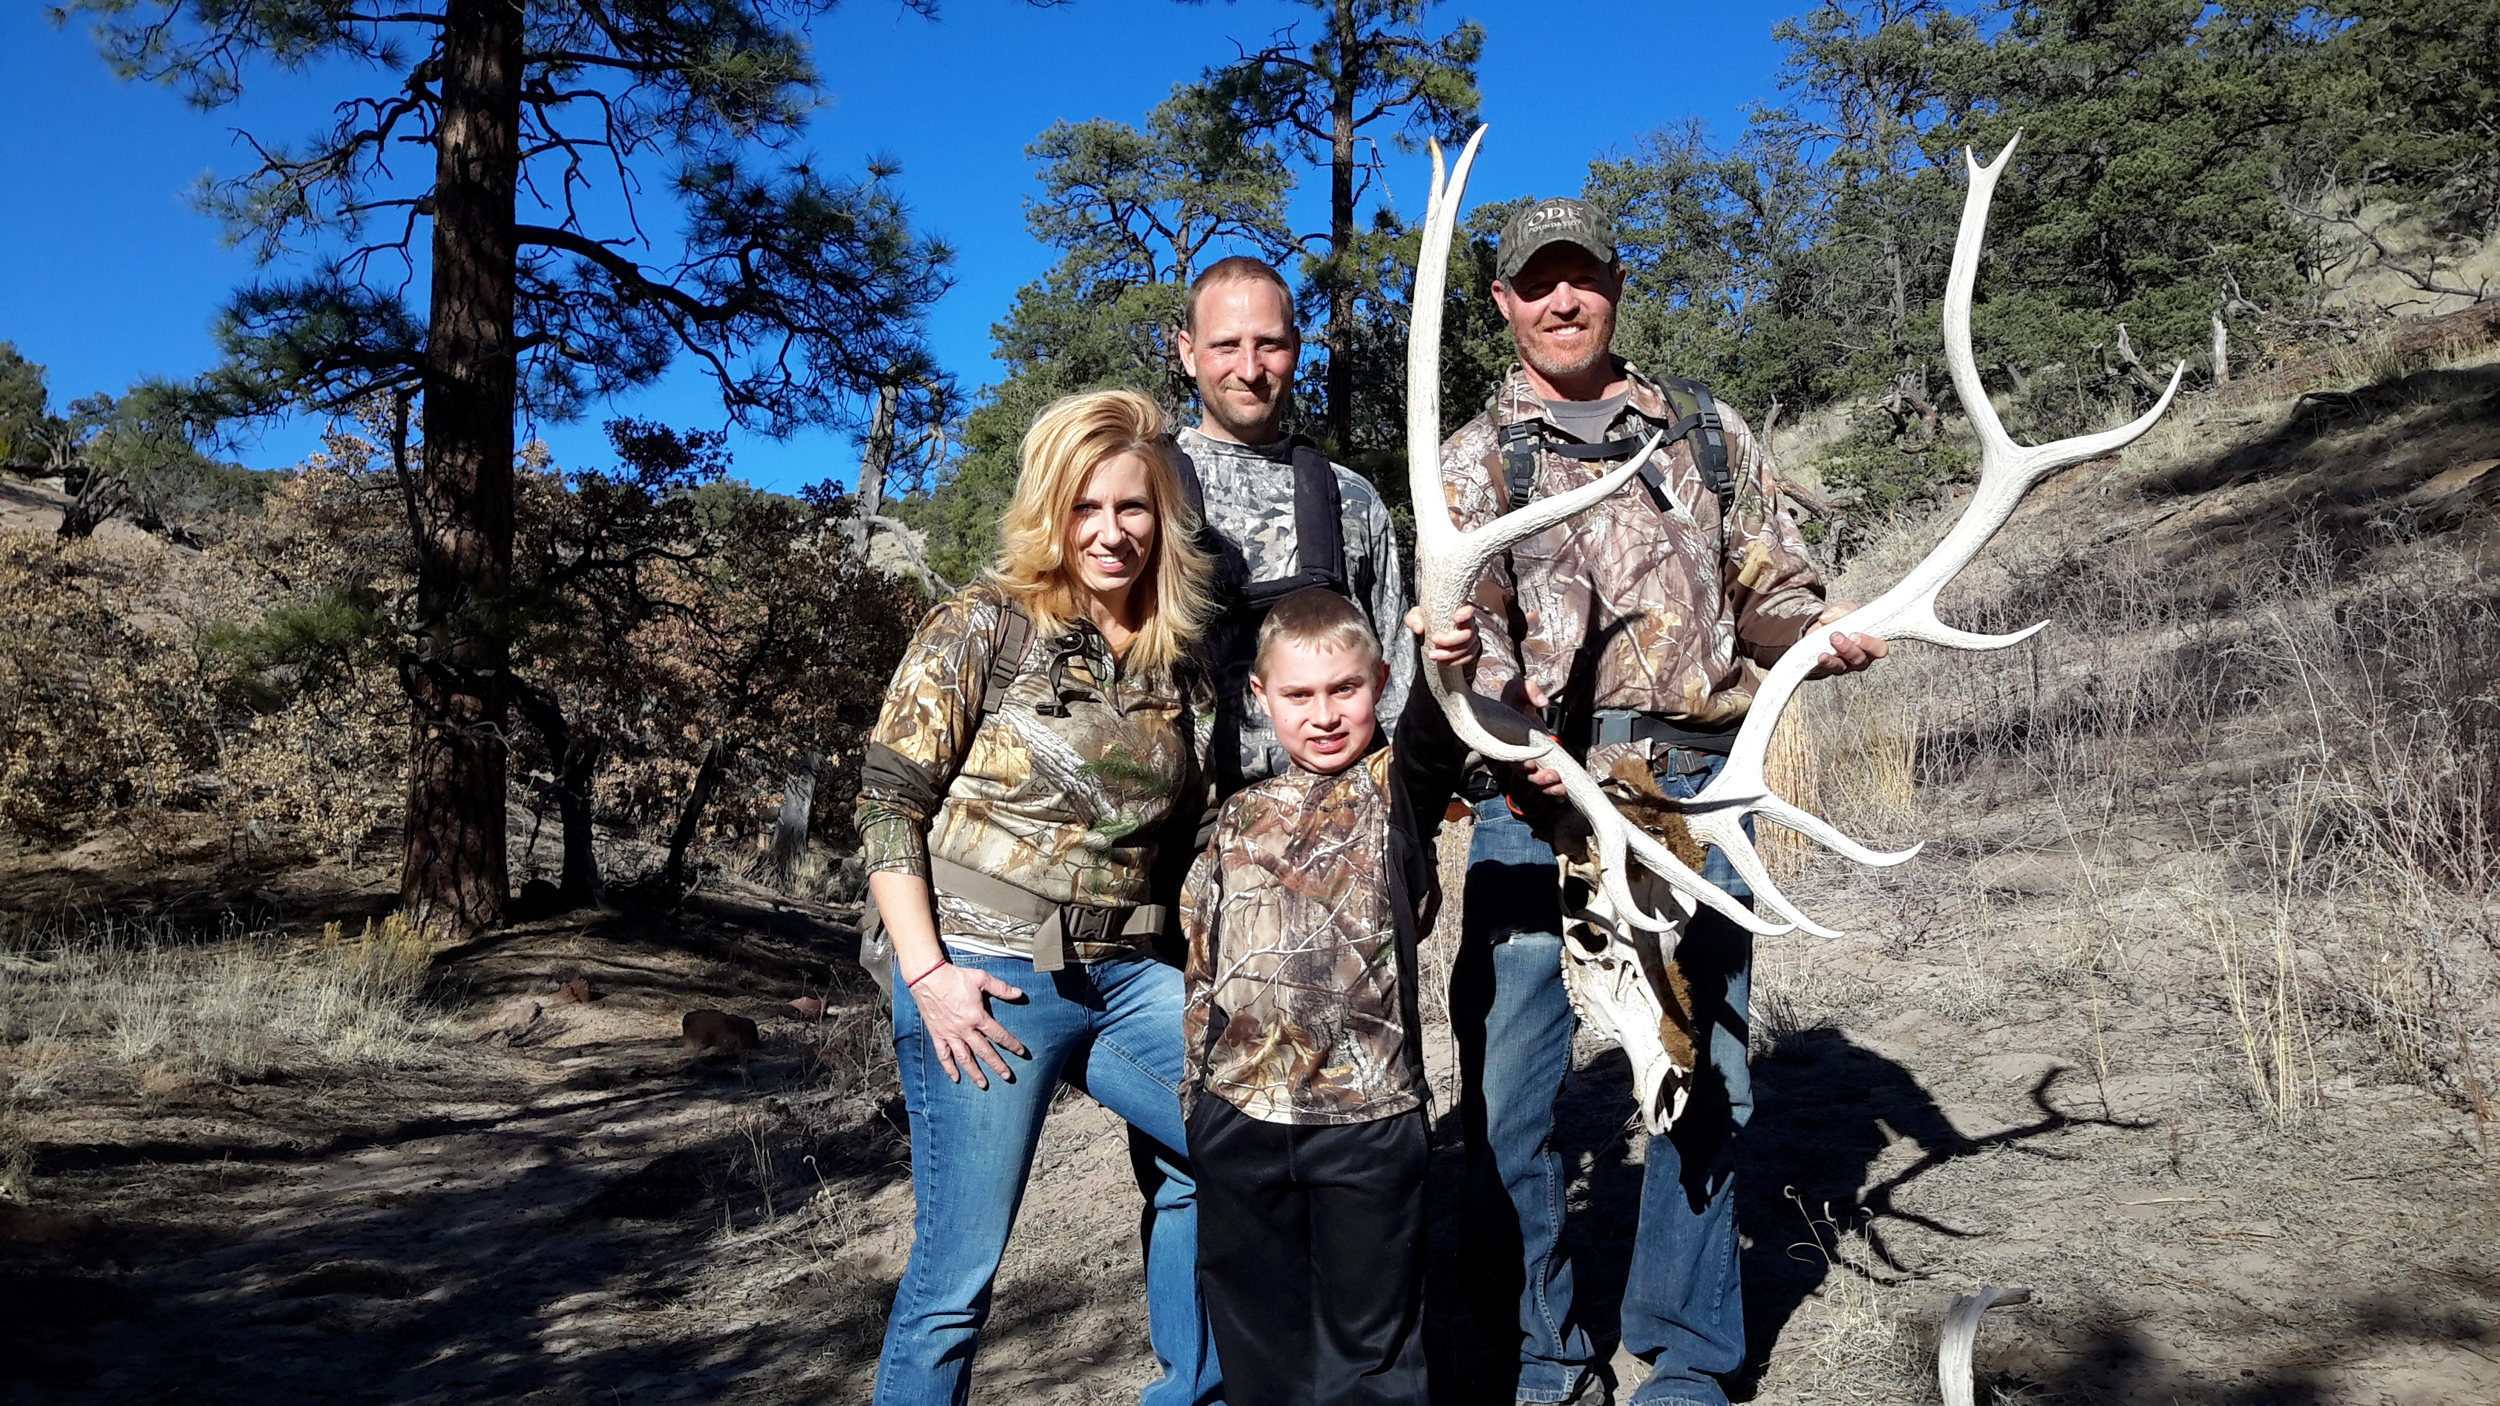 In New Mexico hunting Mountain Lion with Eric Kern on the Montosa Racnh. Along the way, finding this great tresure.